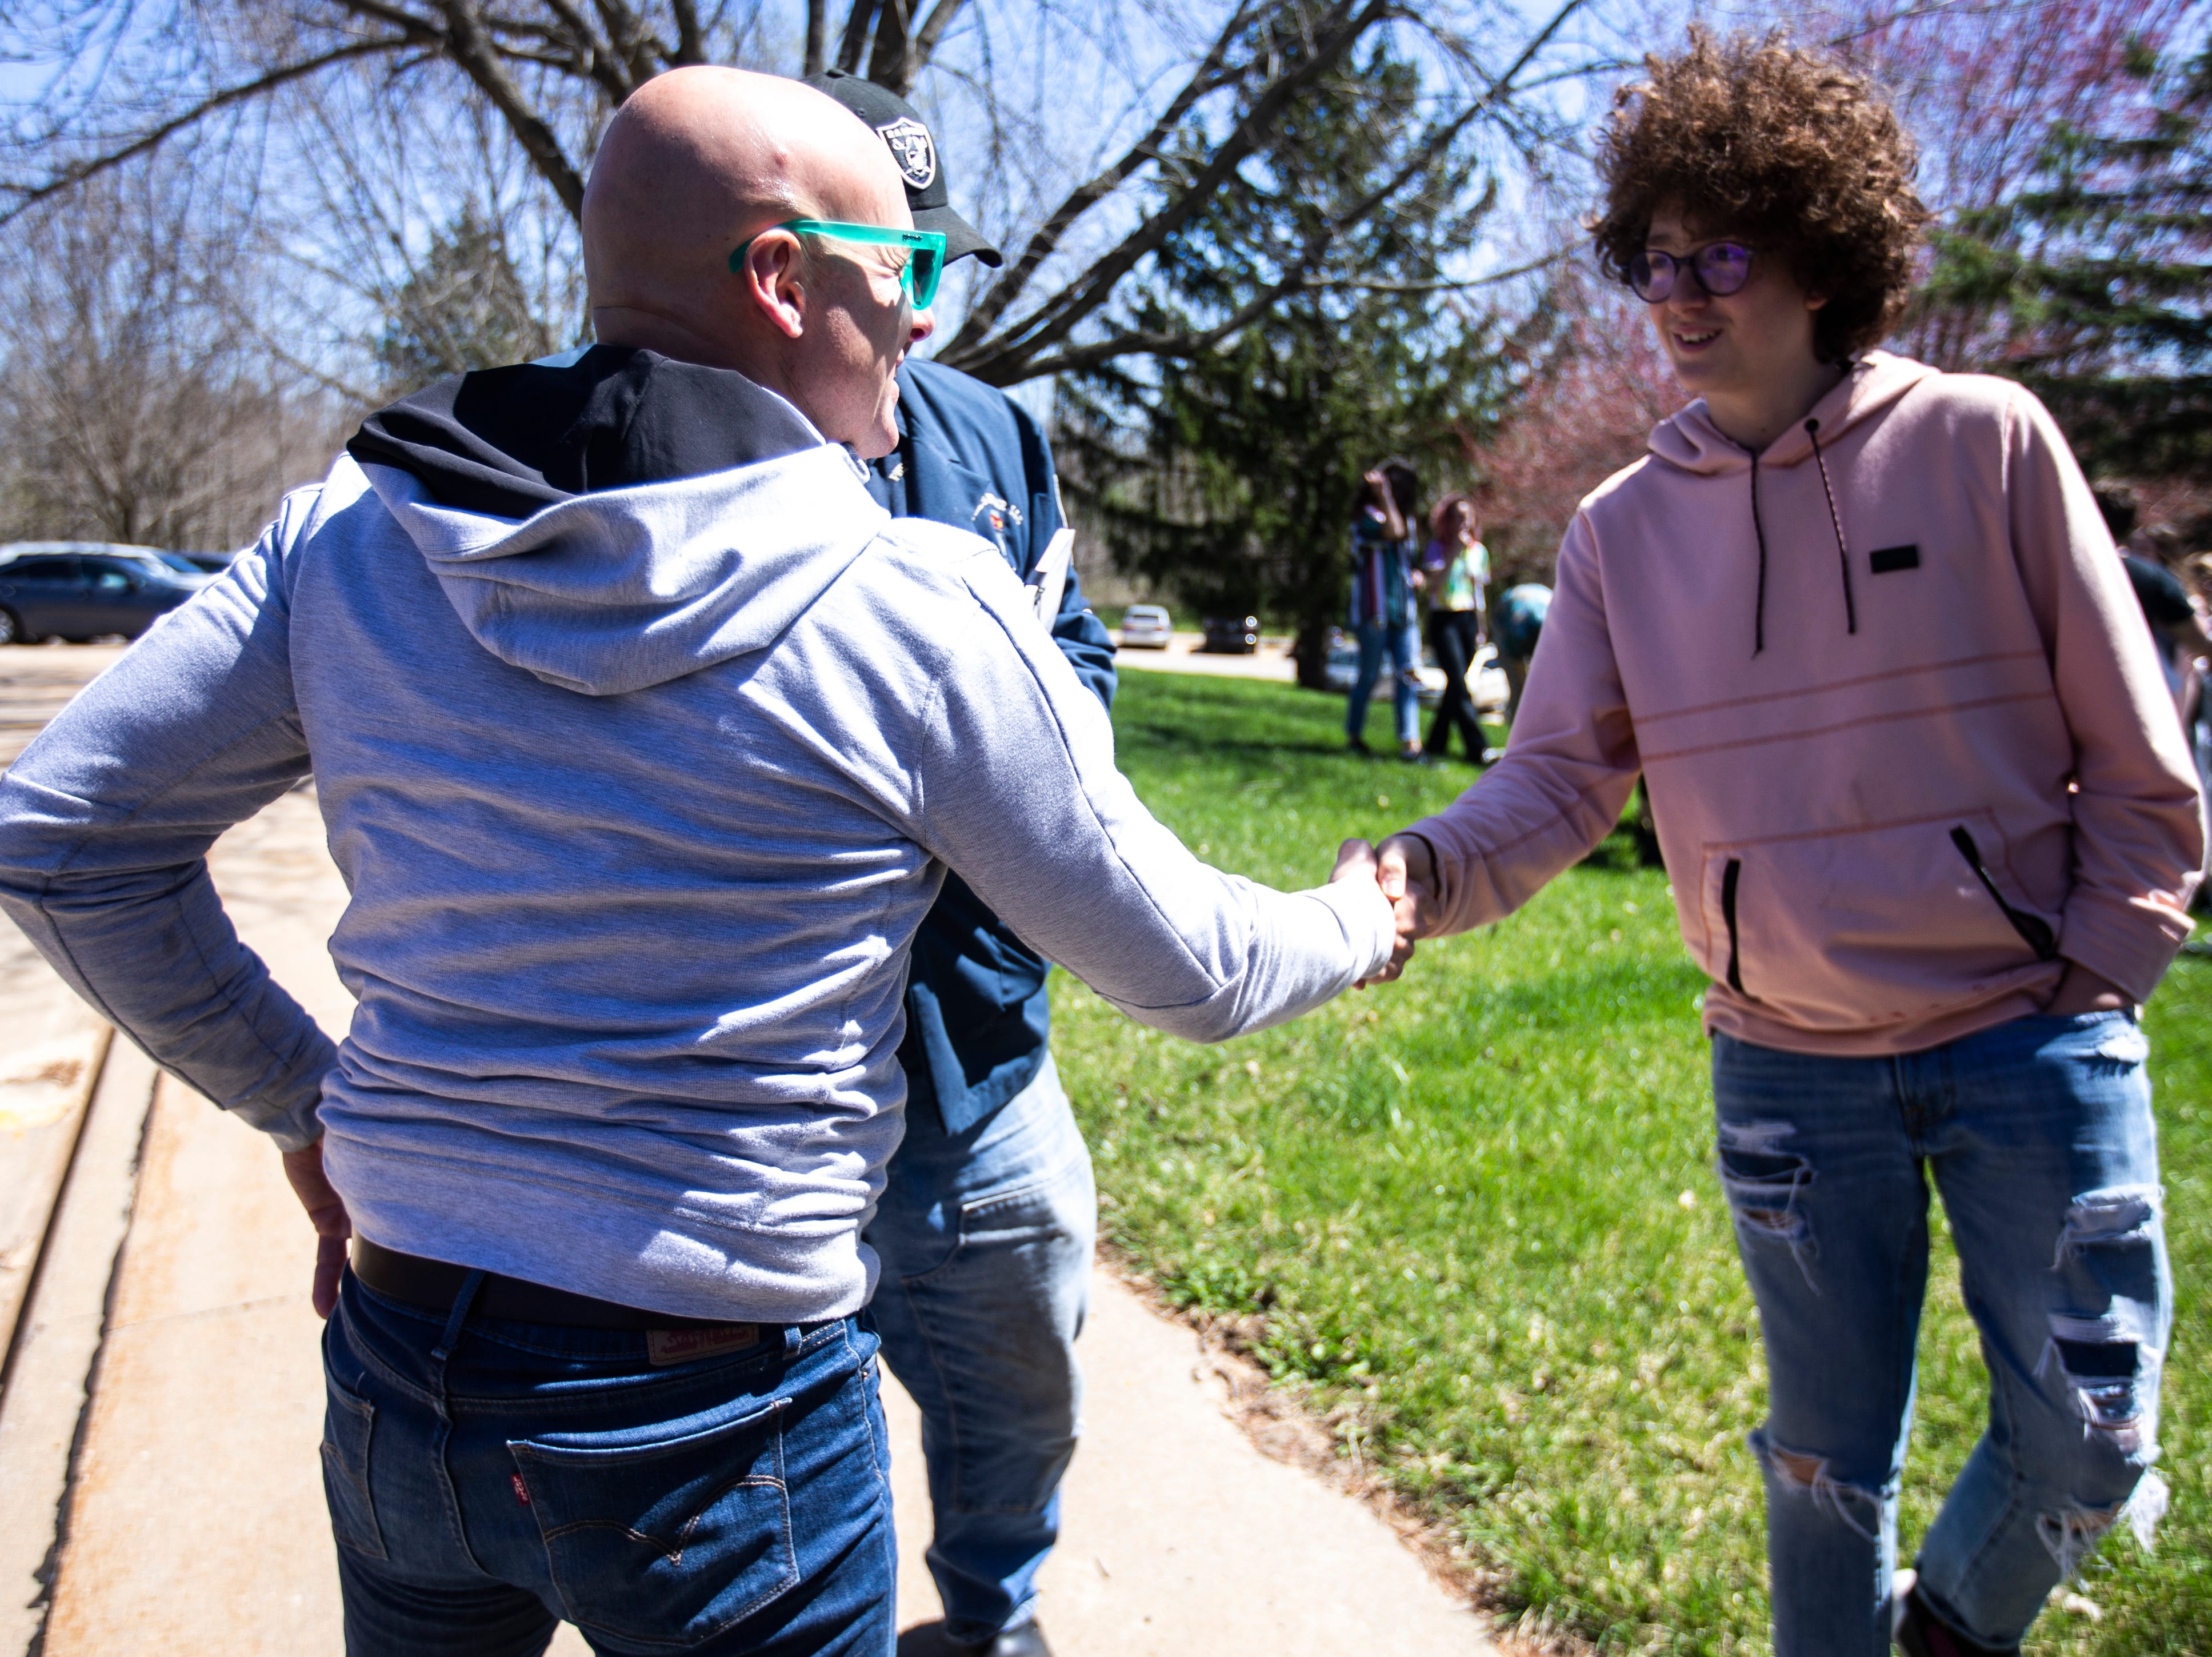 Former Hawkeye, NFL and City High star Tim Dwight shakes hands with Massimo Paciotto-Biggers, right, during a weekly walkout demanding solar panels on school buildings, Friday, April 19, 2019, outside the Iowa City Community School District offices along North Dodge Street in Iowa City, Iowa.